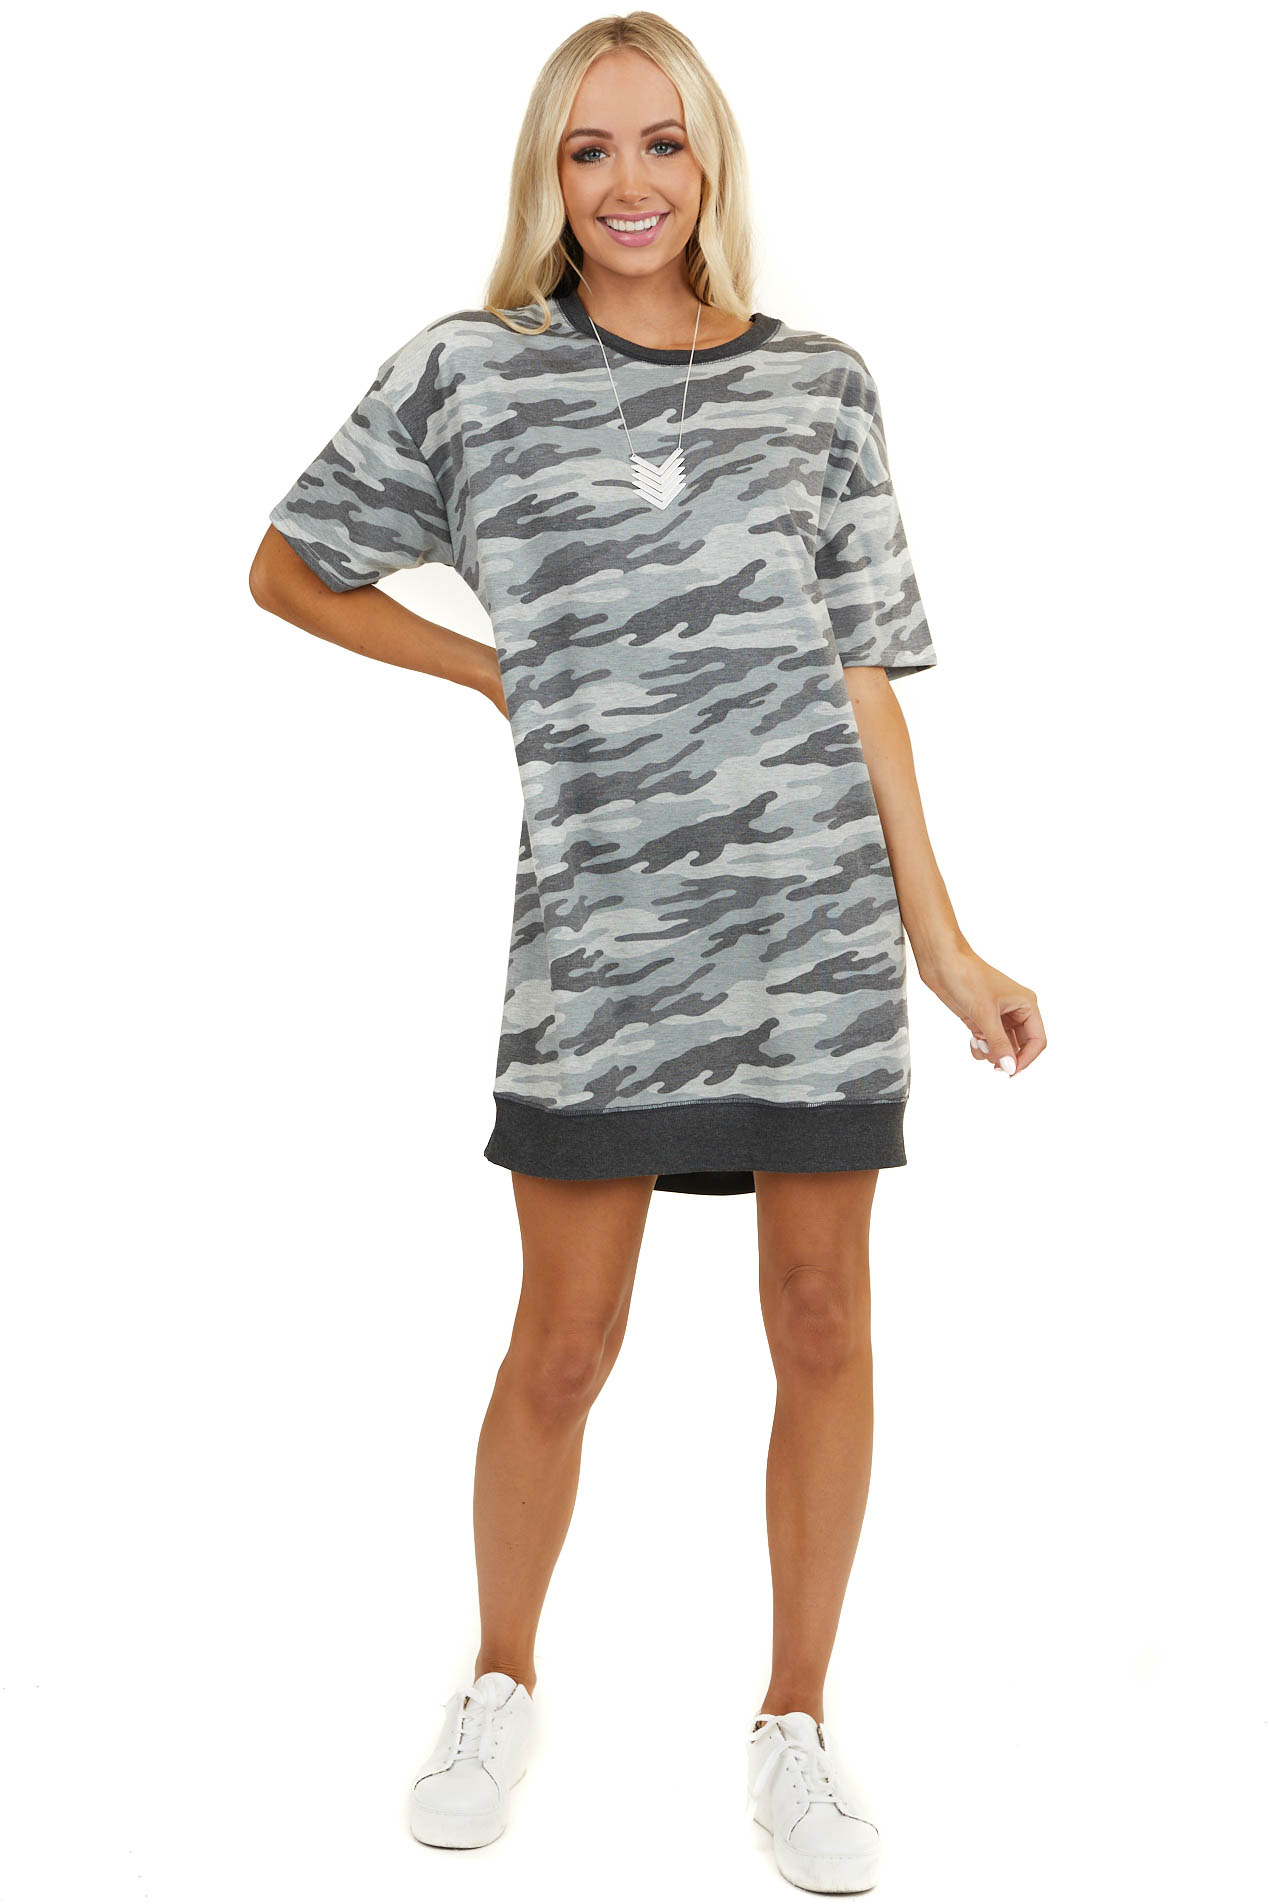 Charcoal Camo Print French Terry Dress with Short Sleeves